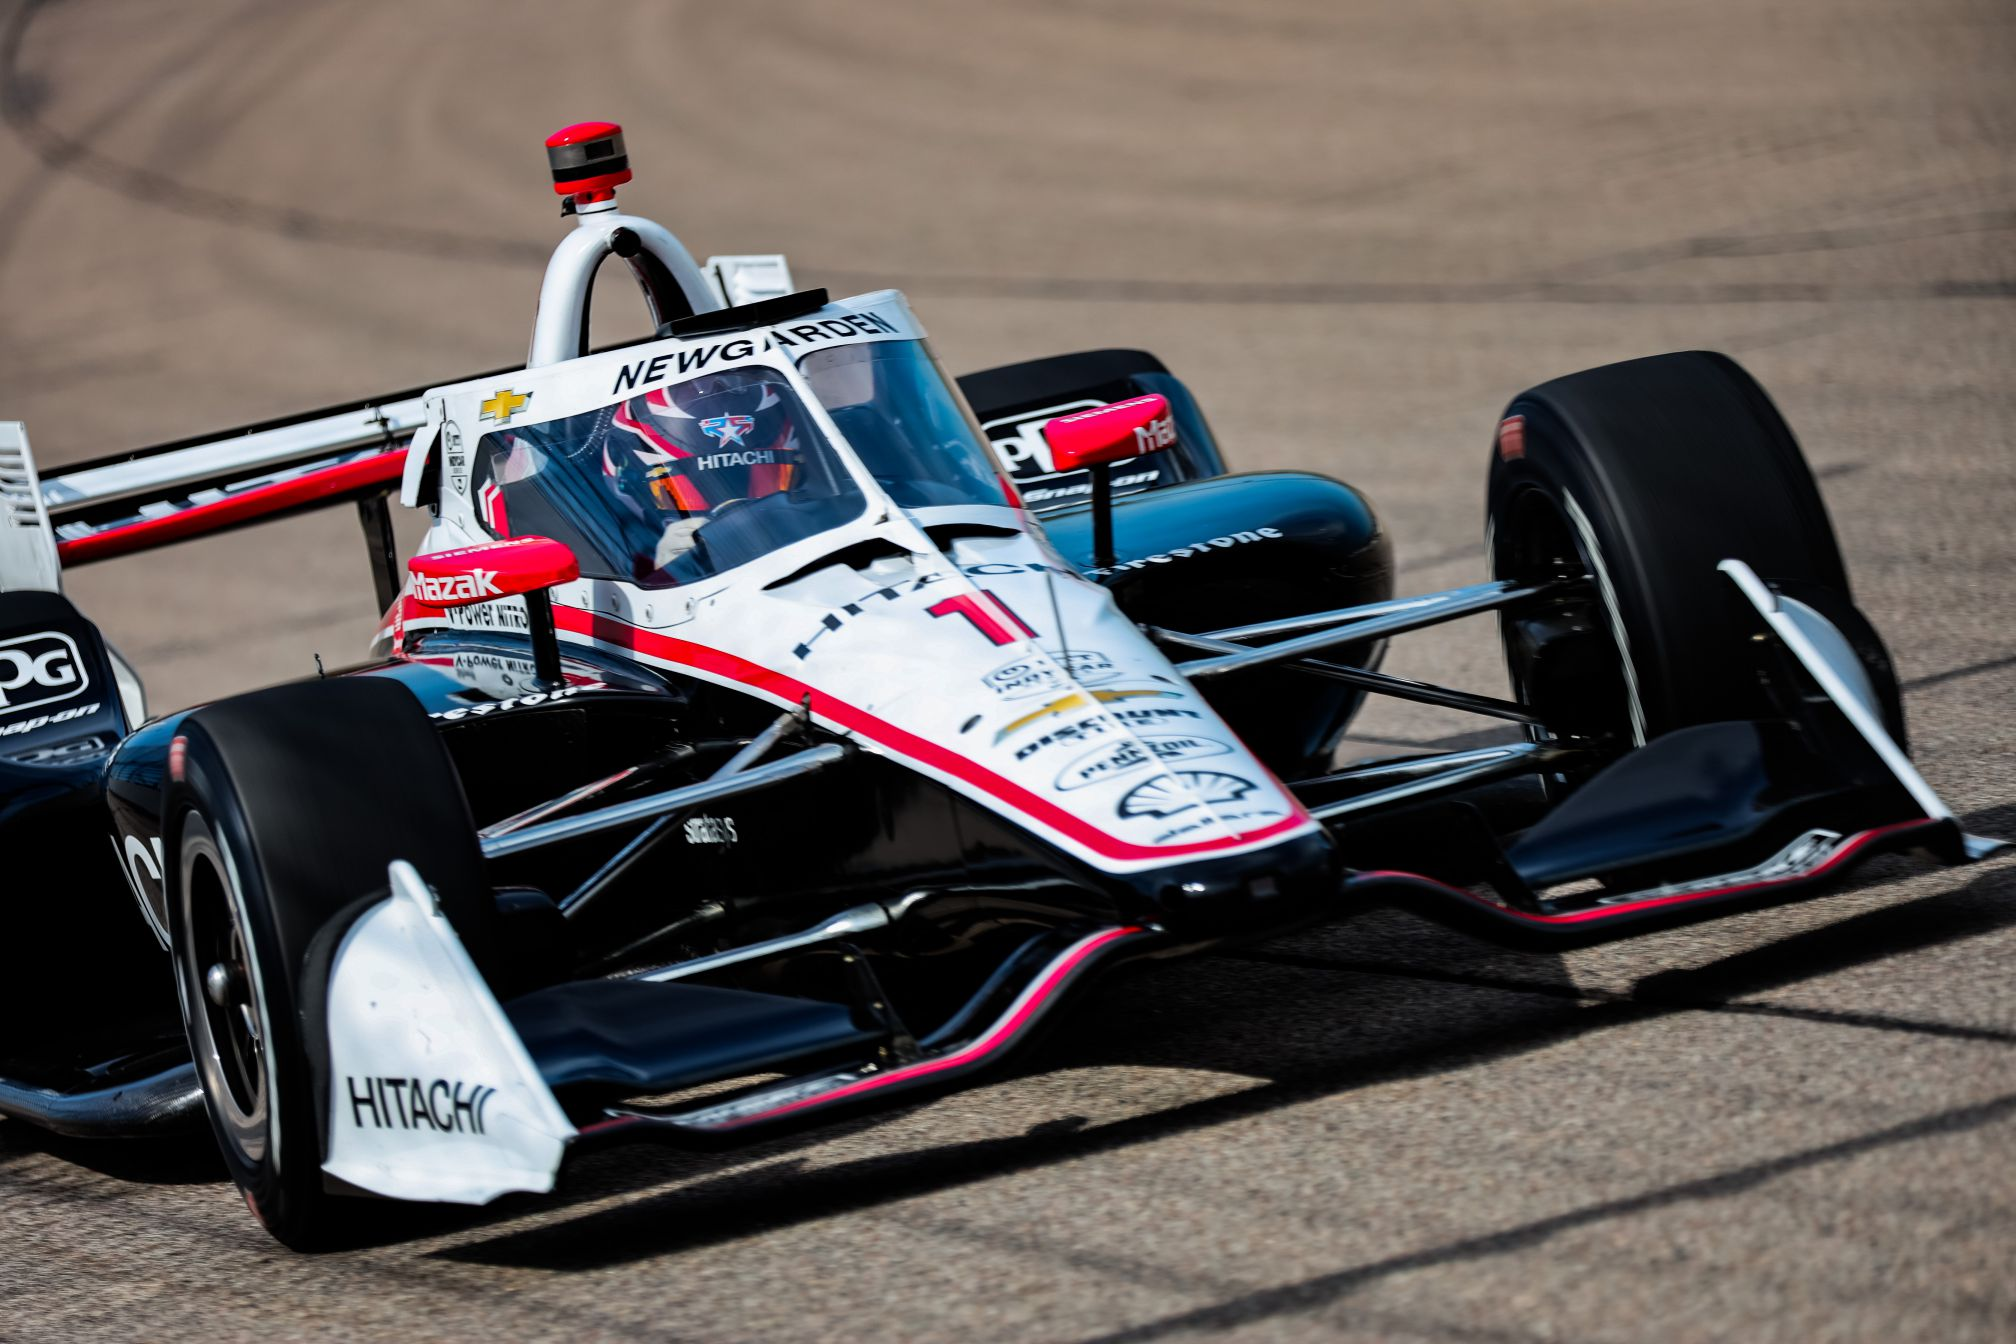 Josef Newgarden took the win in Race 2 at the Iowa Speedway giving Team Penske a sweep of the INDYCAR weekend. © [Andy Clary/ Spacesuit Media]